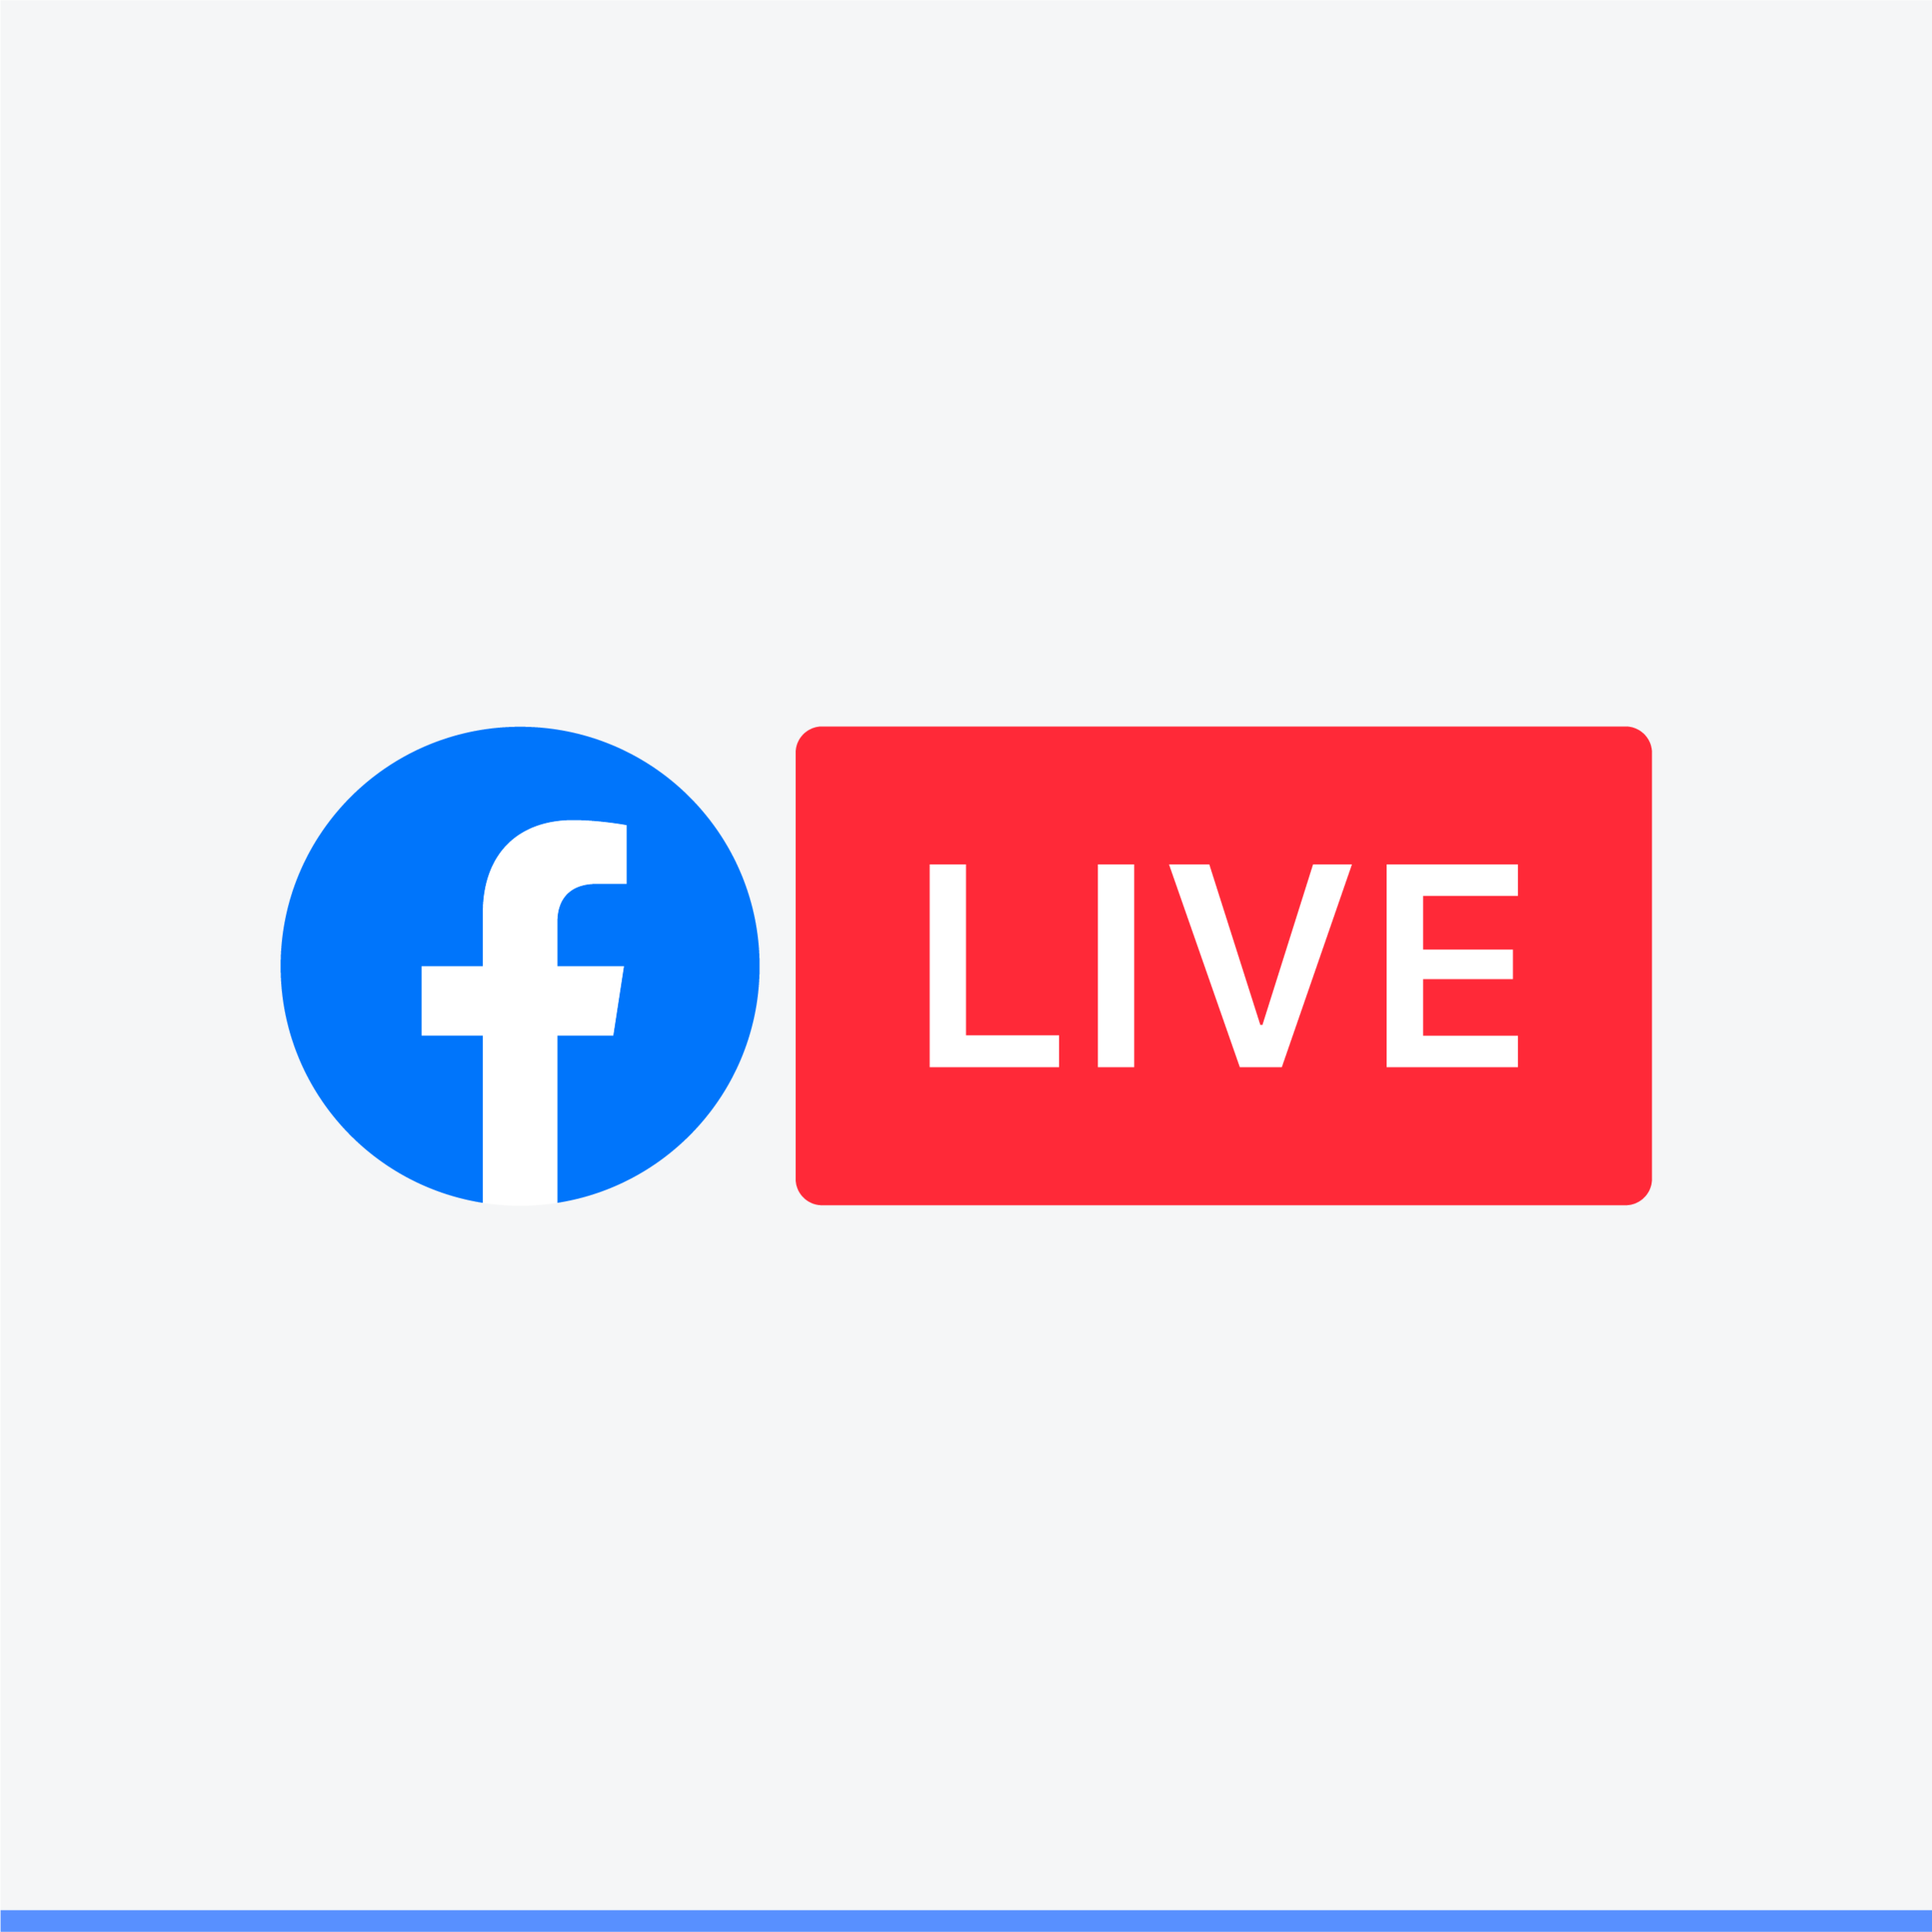 FB-Live-Do-v2.png